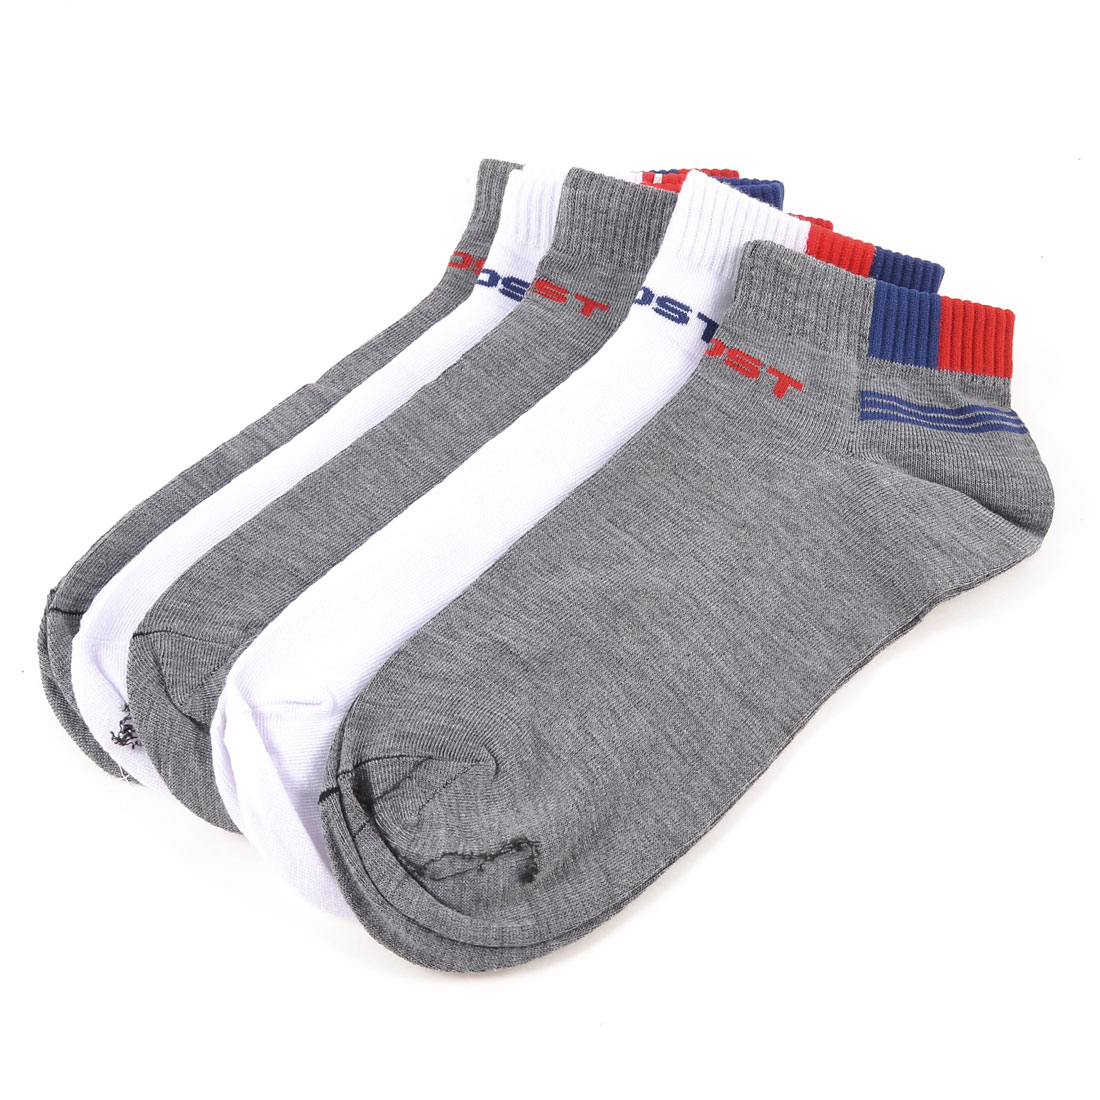 5 Pairs Gray White Stretchy Cuff Striped Sports Ankle Socks for Man